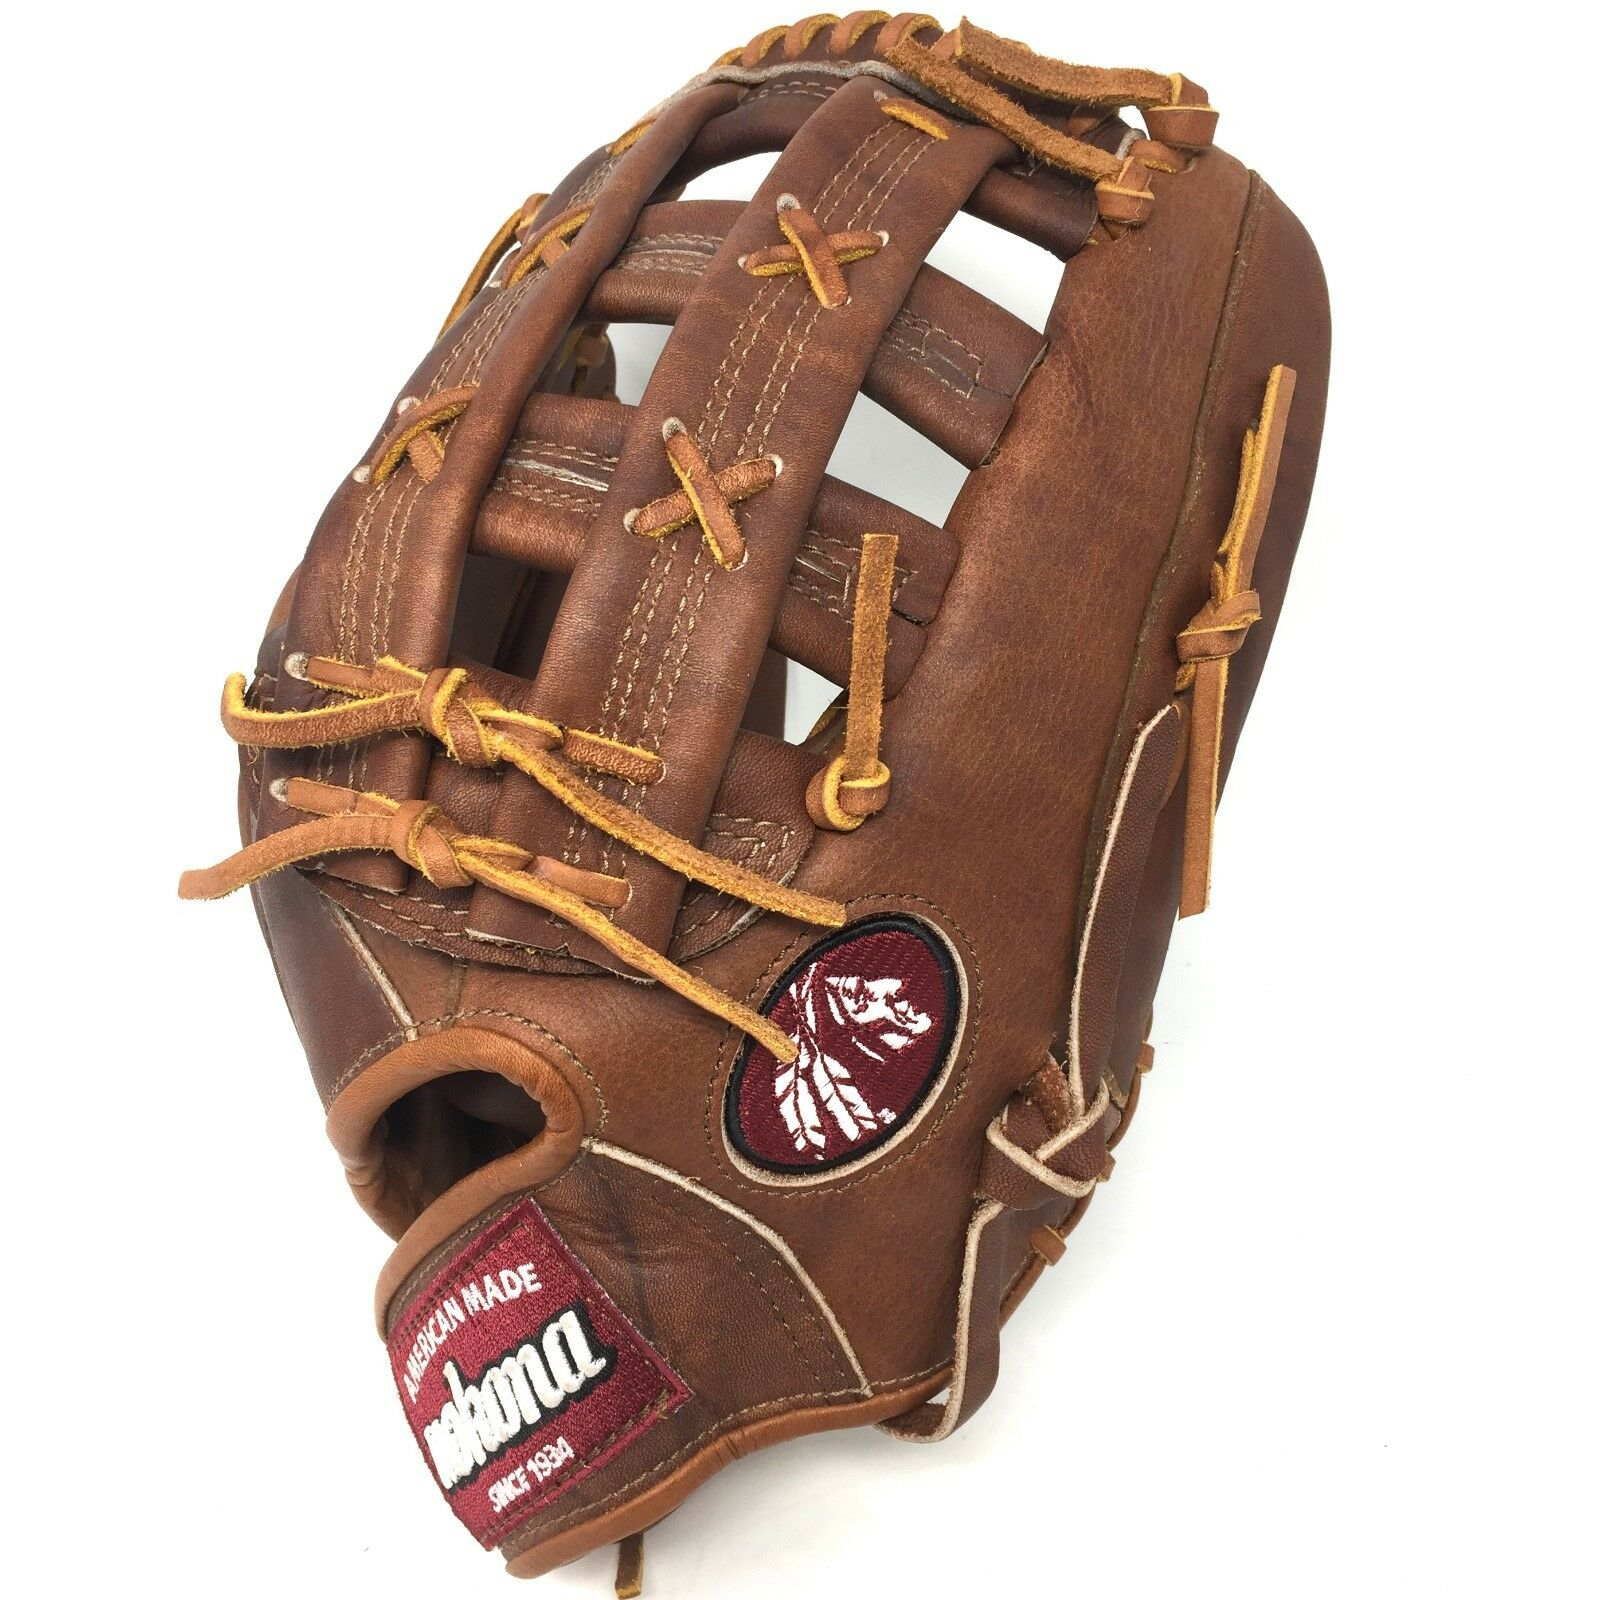 WB-1275H-RightHandThrow Nokona Walnut Glove 12.75 Baseball Glove Walnut WB-1275H Outfield a370b4